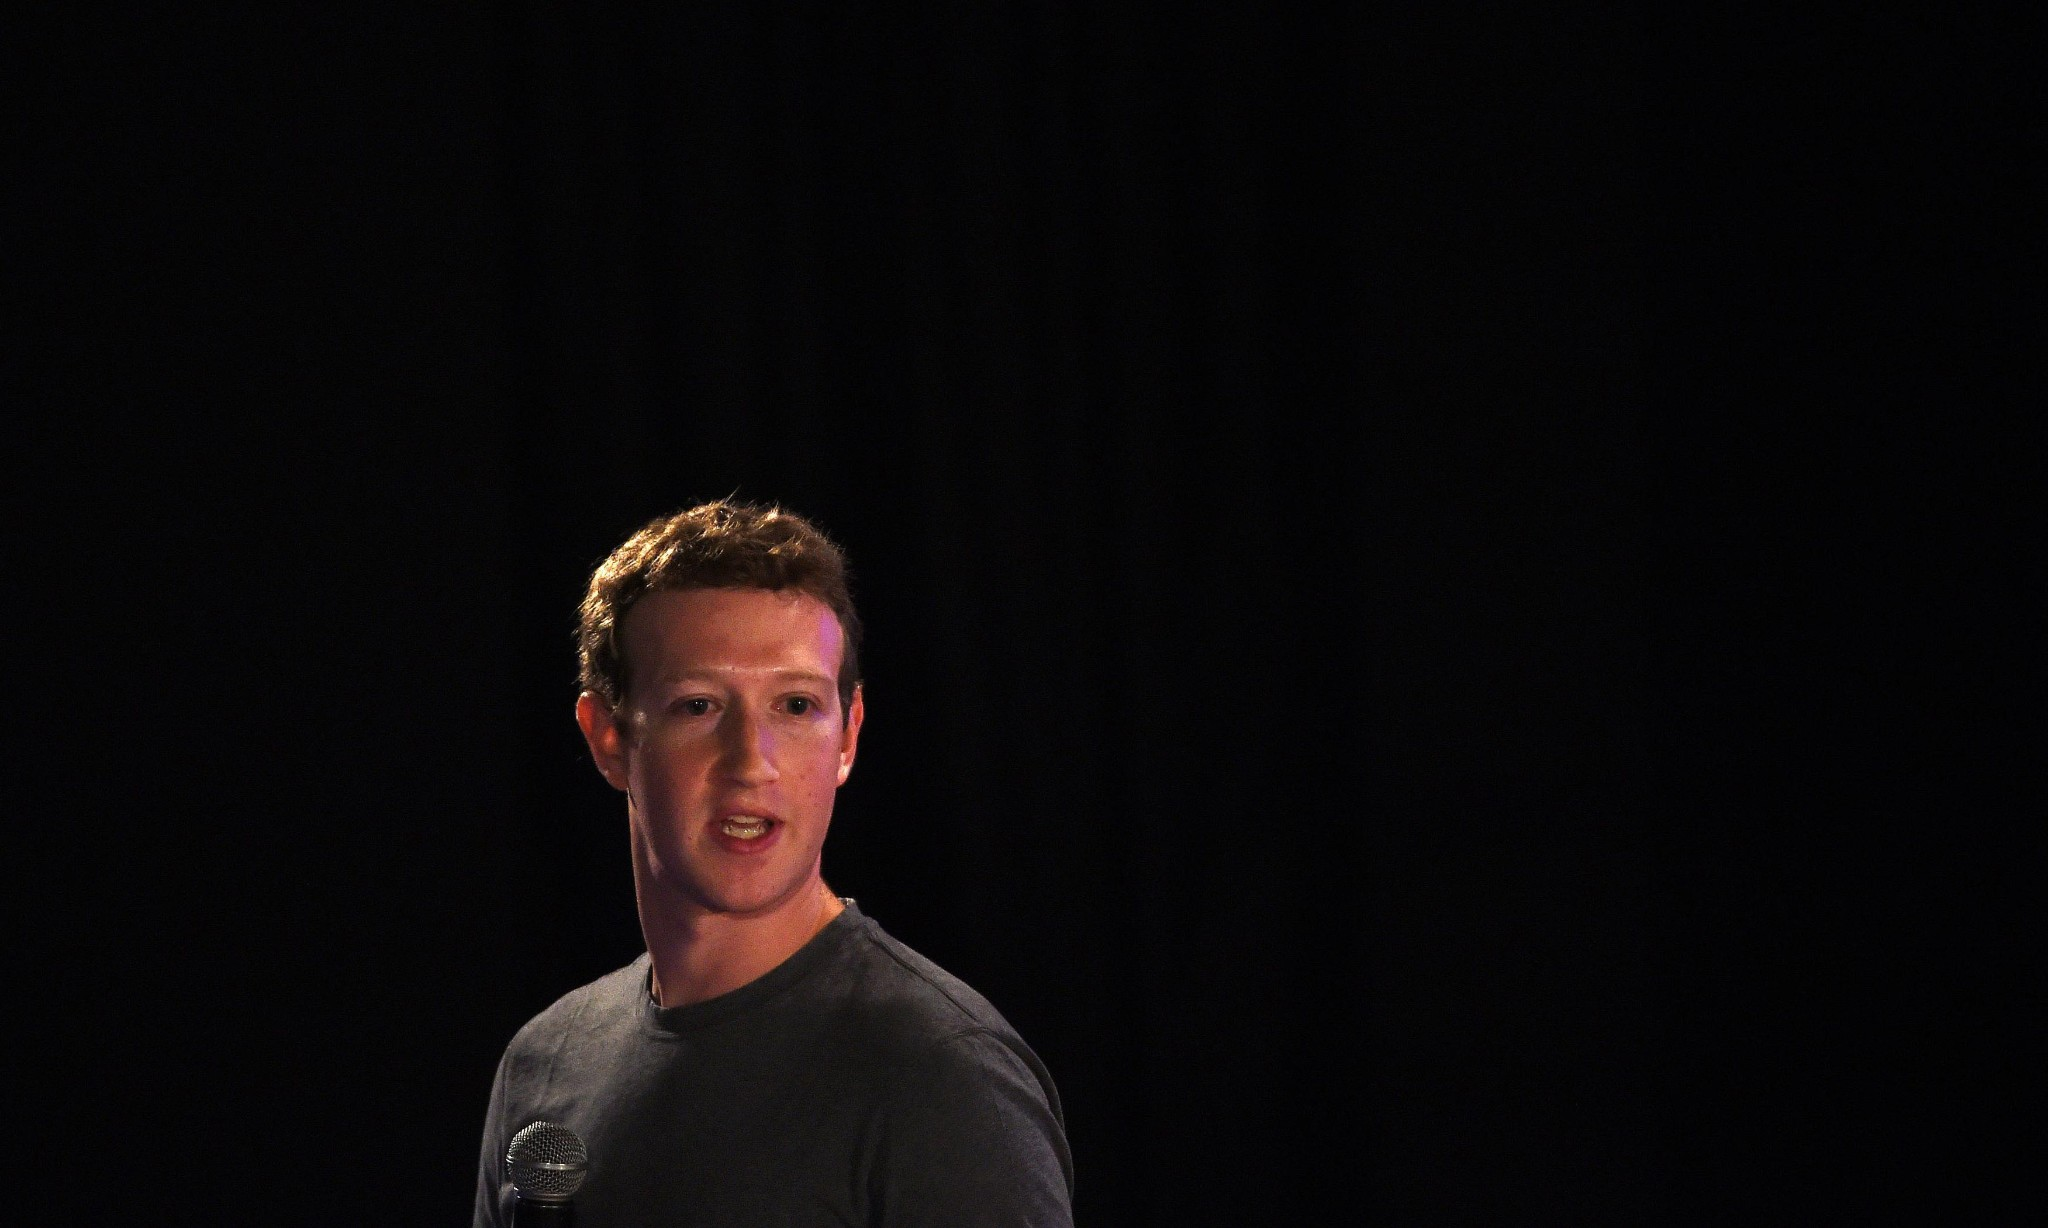 Facebook's fake news: Mark Zuckerberg rejects 'crazy idea' that it swayed voters